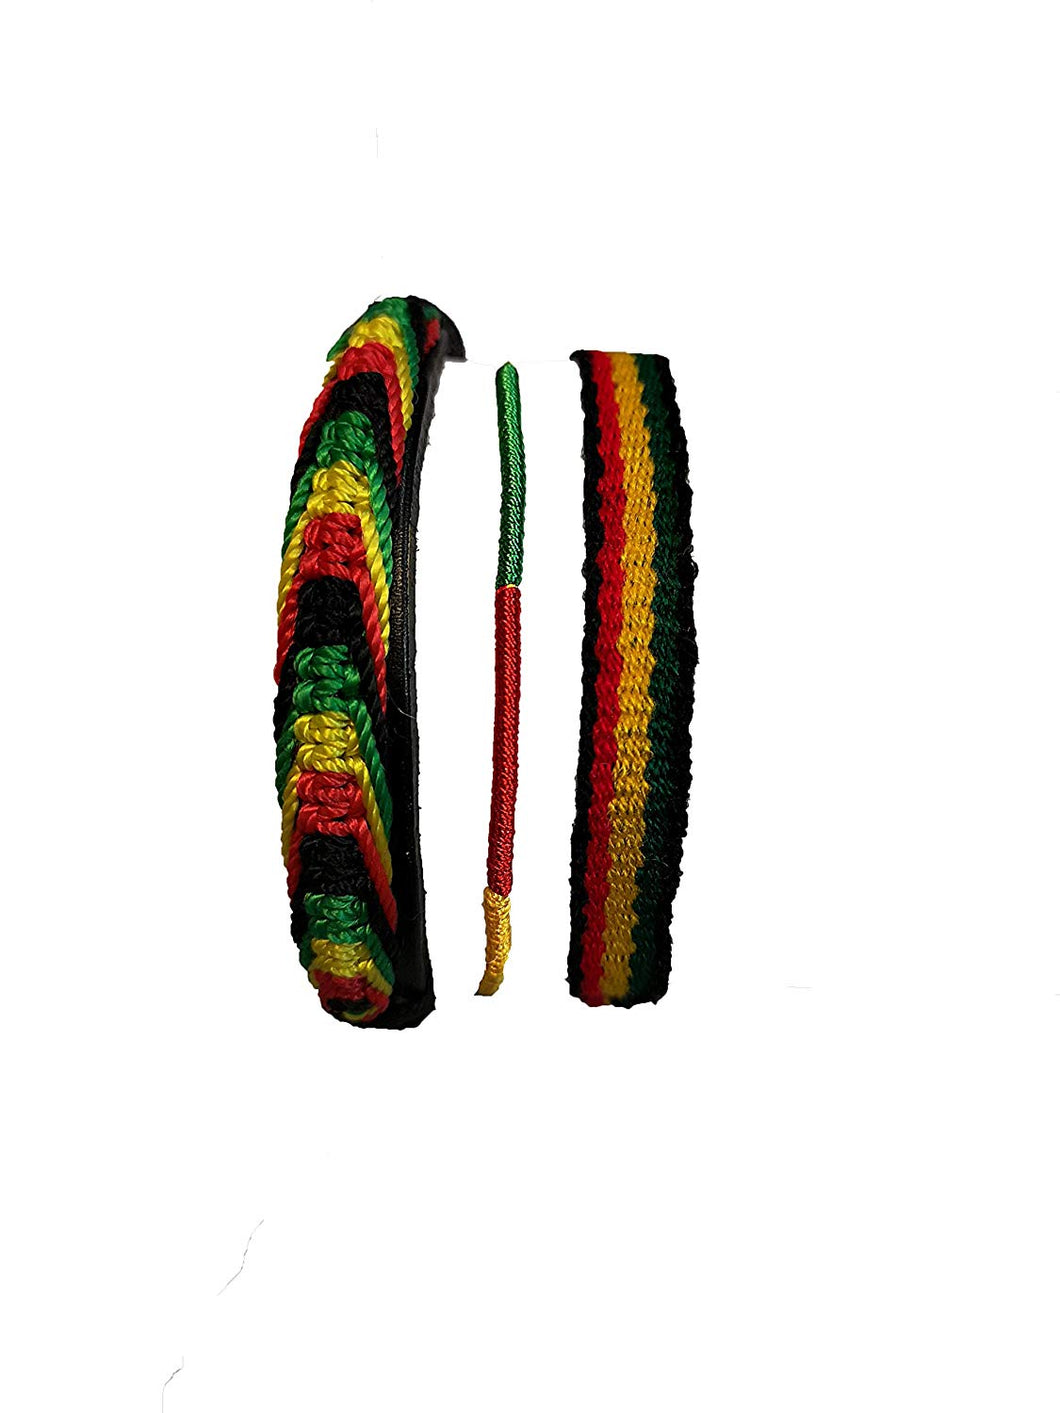 New Rasta bob Marley style friendship armband 3 piece set